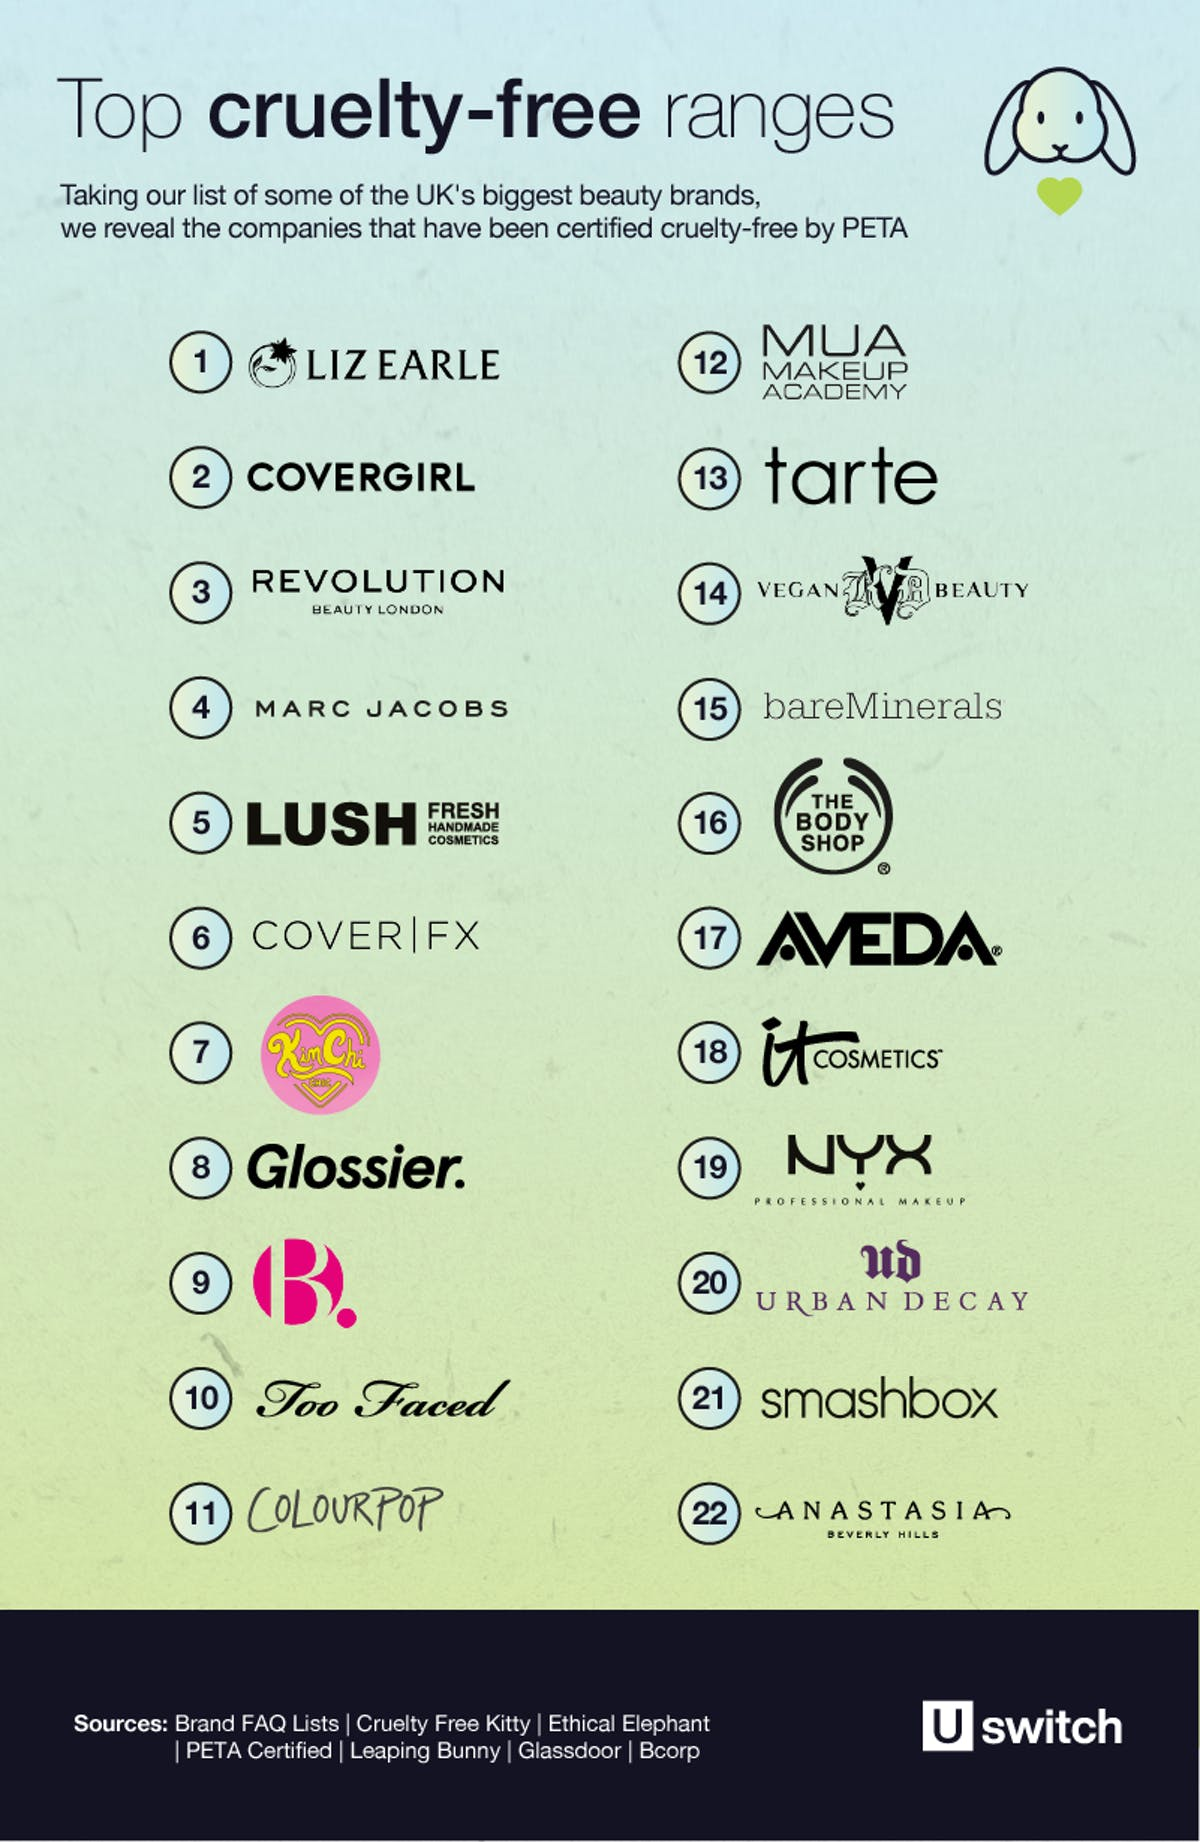 A picture of the top 22 cruelty-free beauty ranges